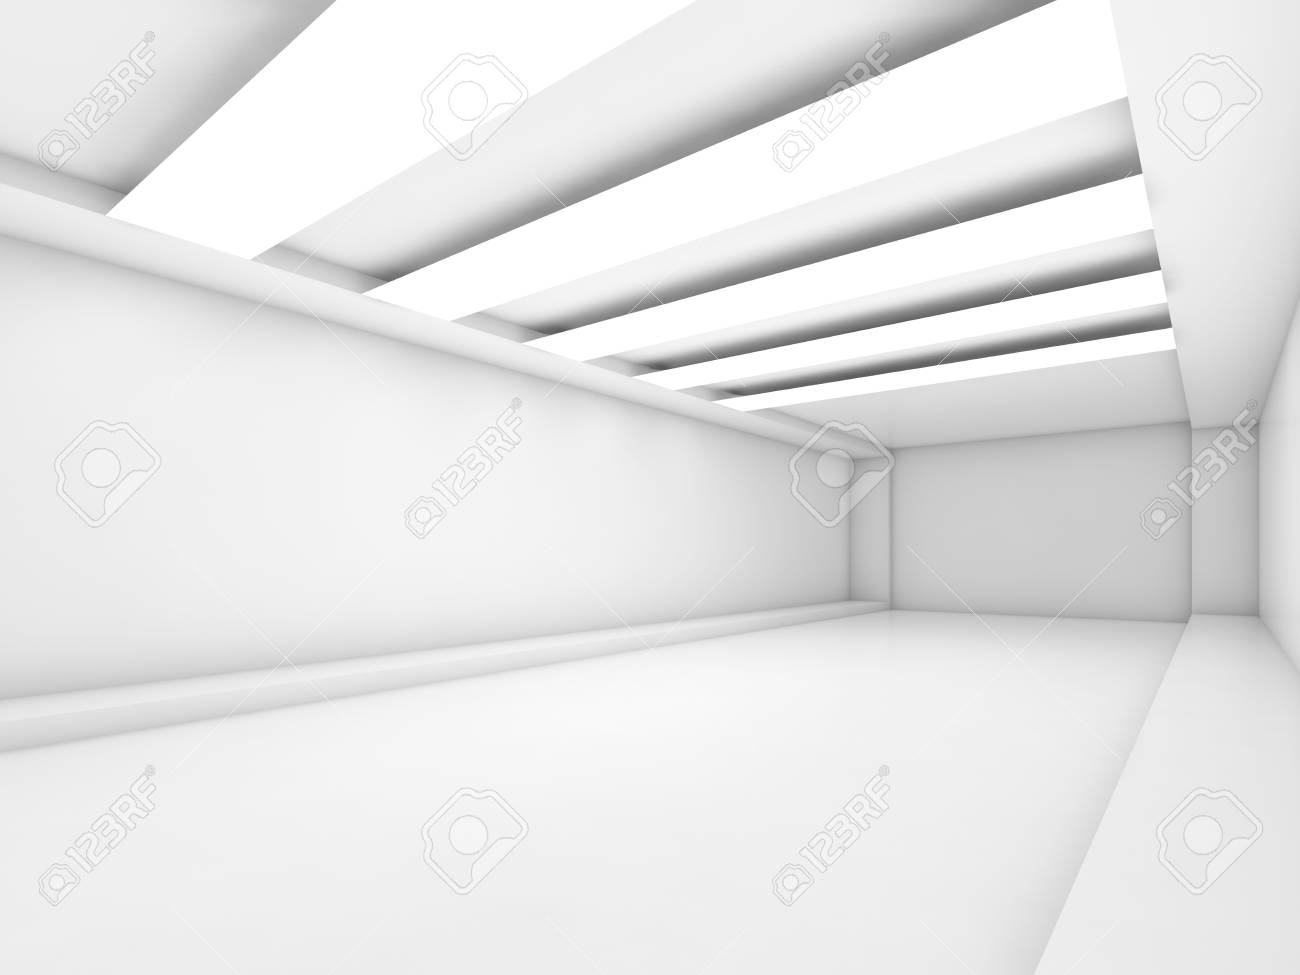 Abstract empty white corridor background with stripes of